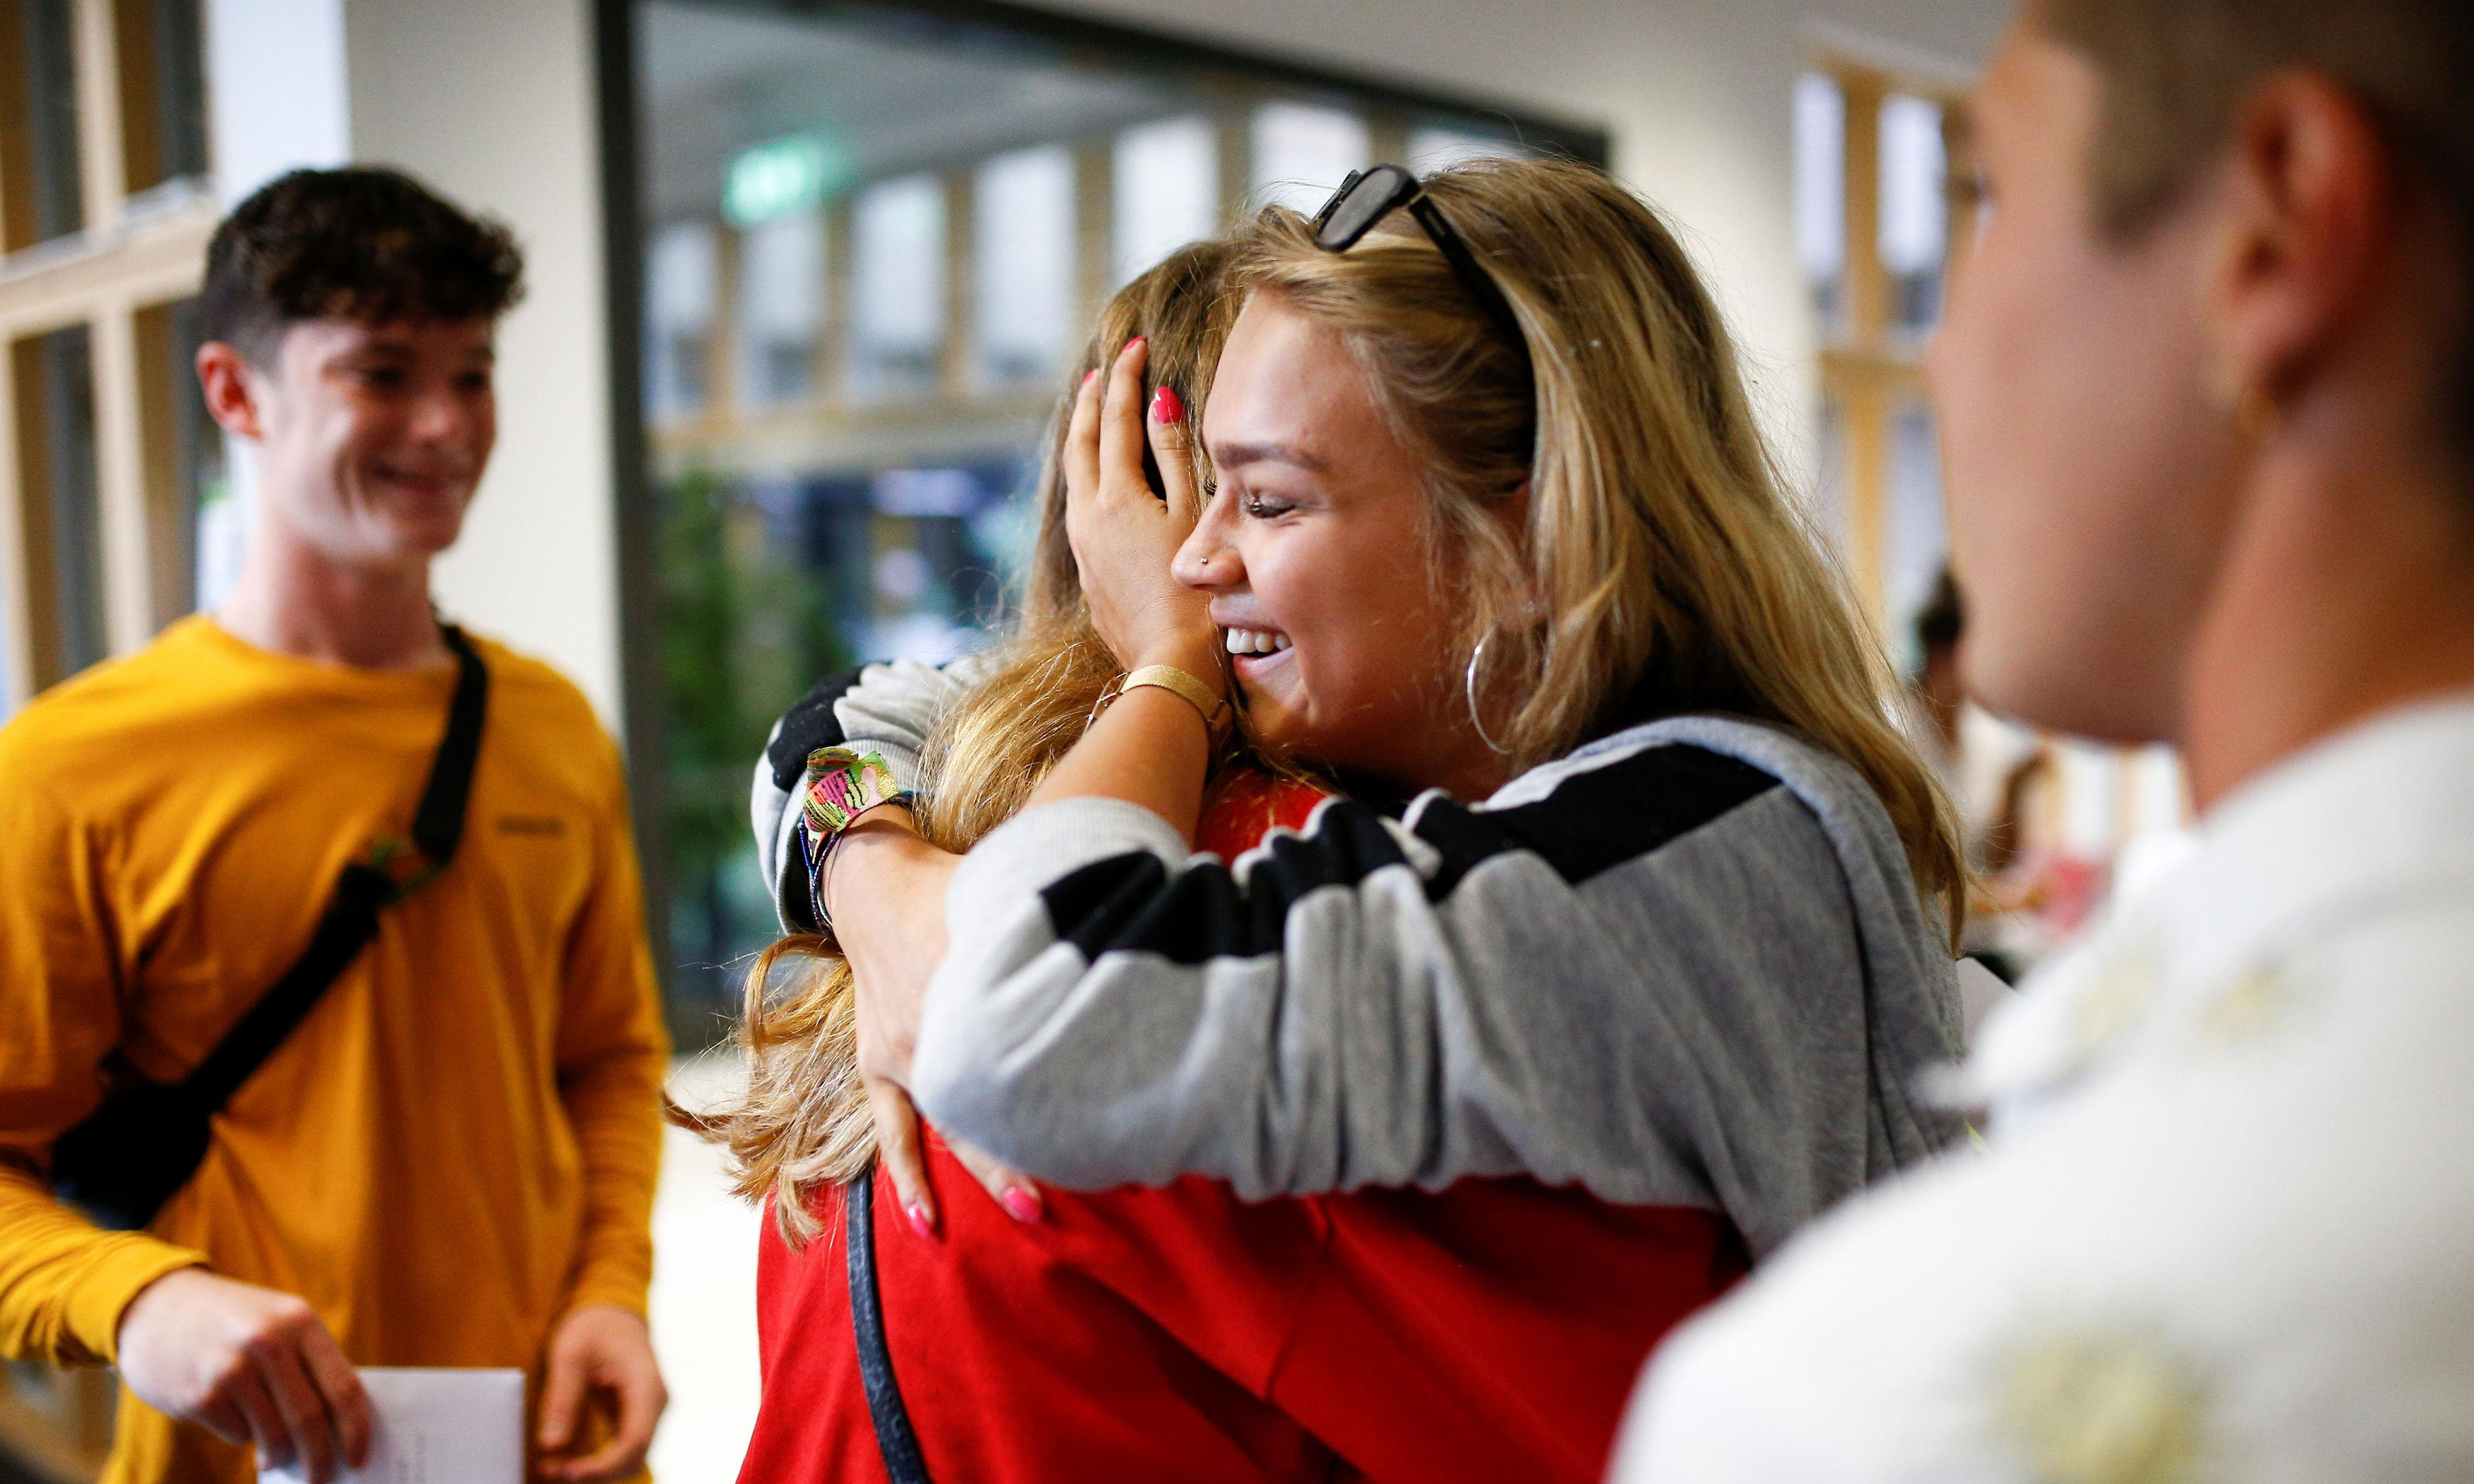 The Guardian view on A-levels: end the guesswork in university admissions